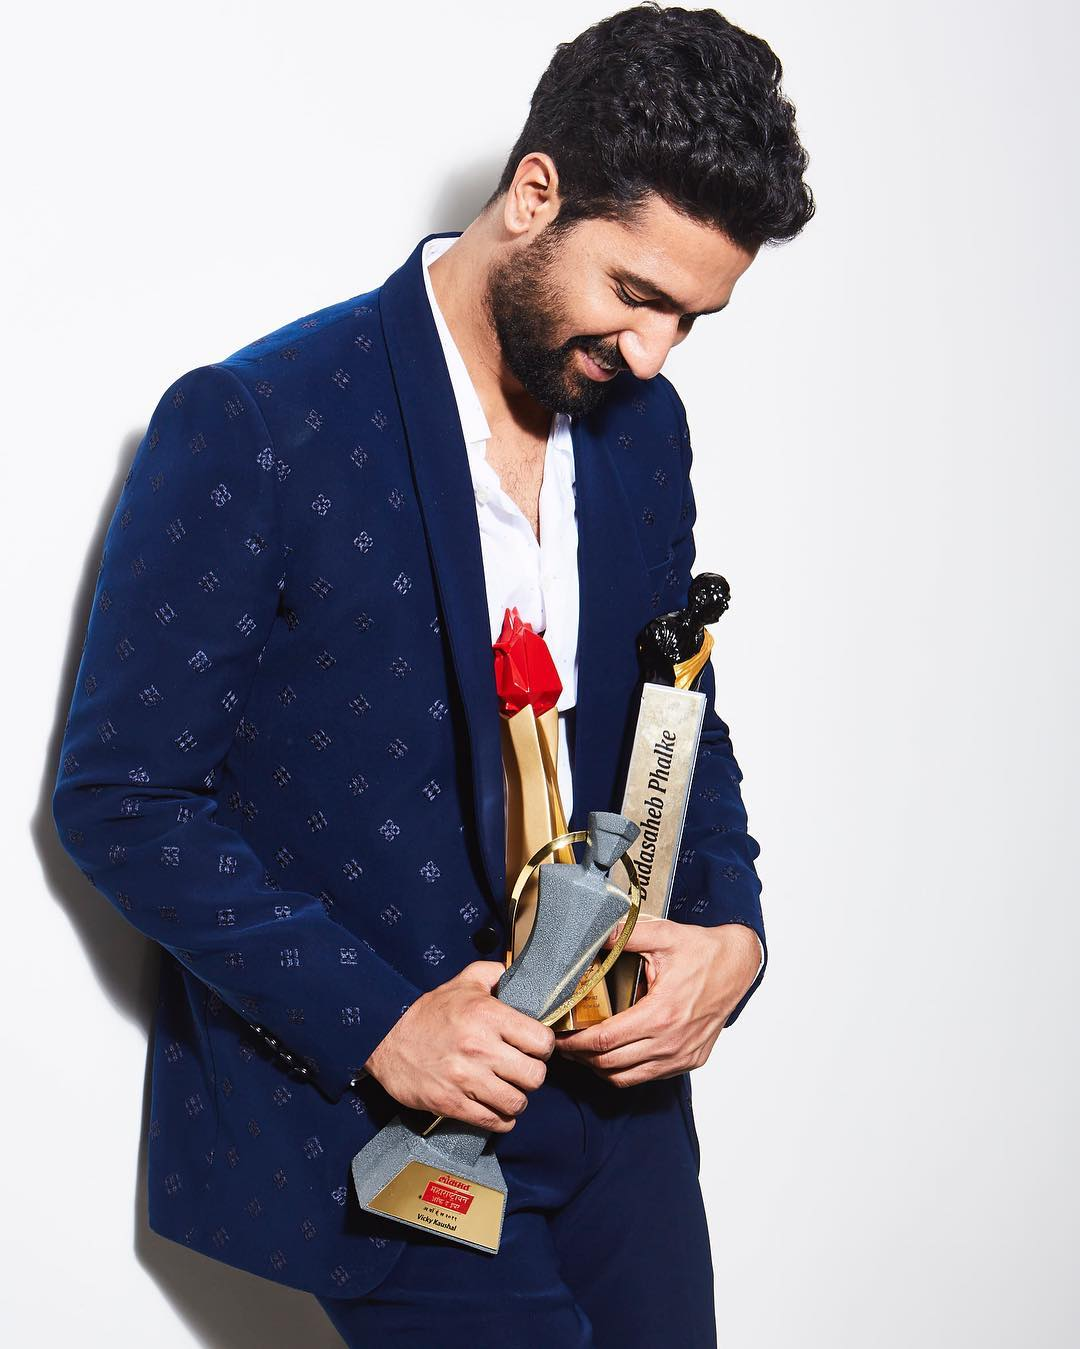 Vicky Kaushal's Role in Takht To Be Revamped